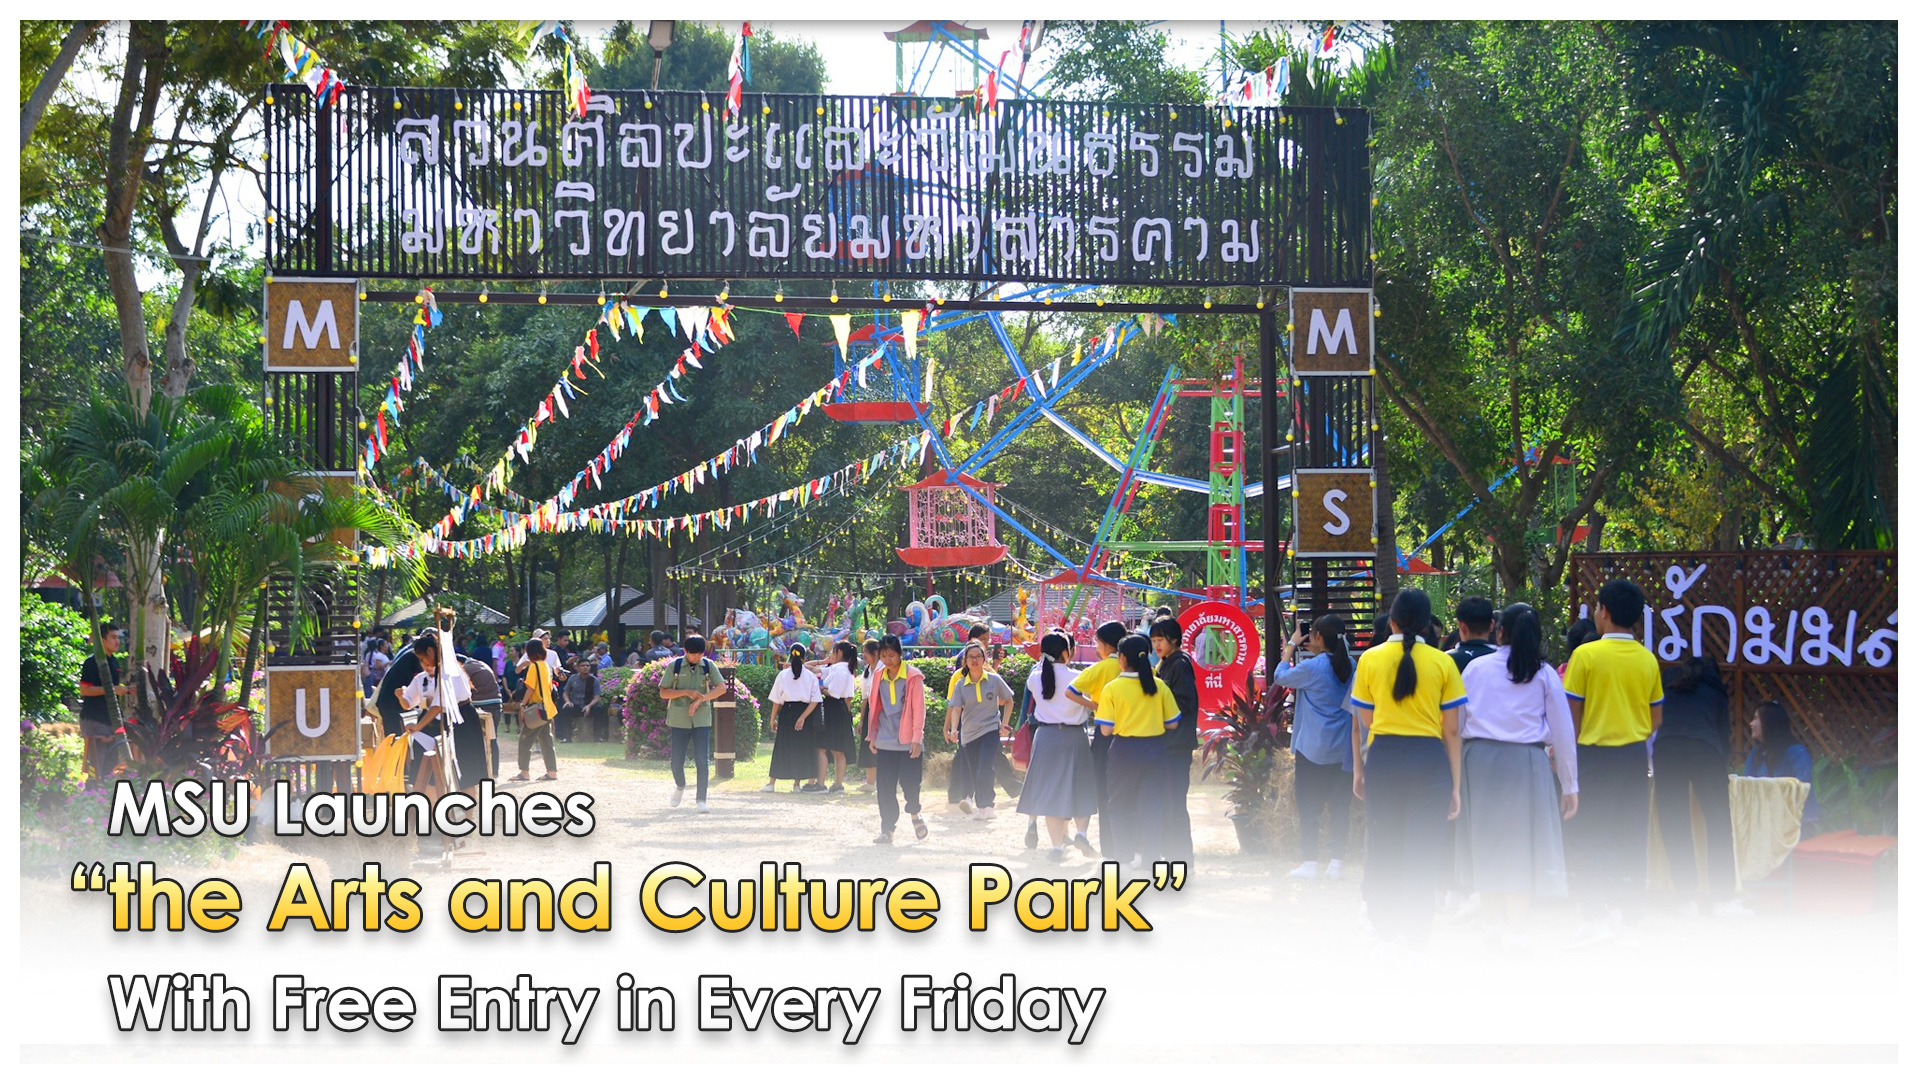 "MSU Launches ""the Arts and Culture Park"" With Free Entry in Every Friday"